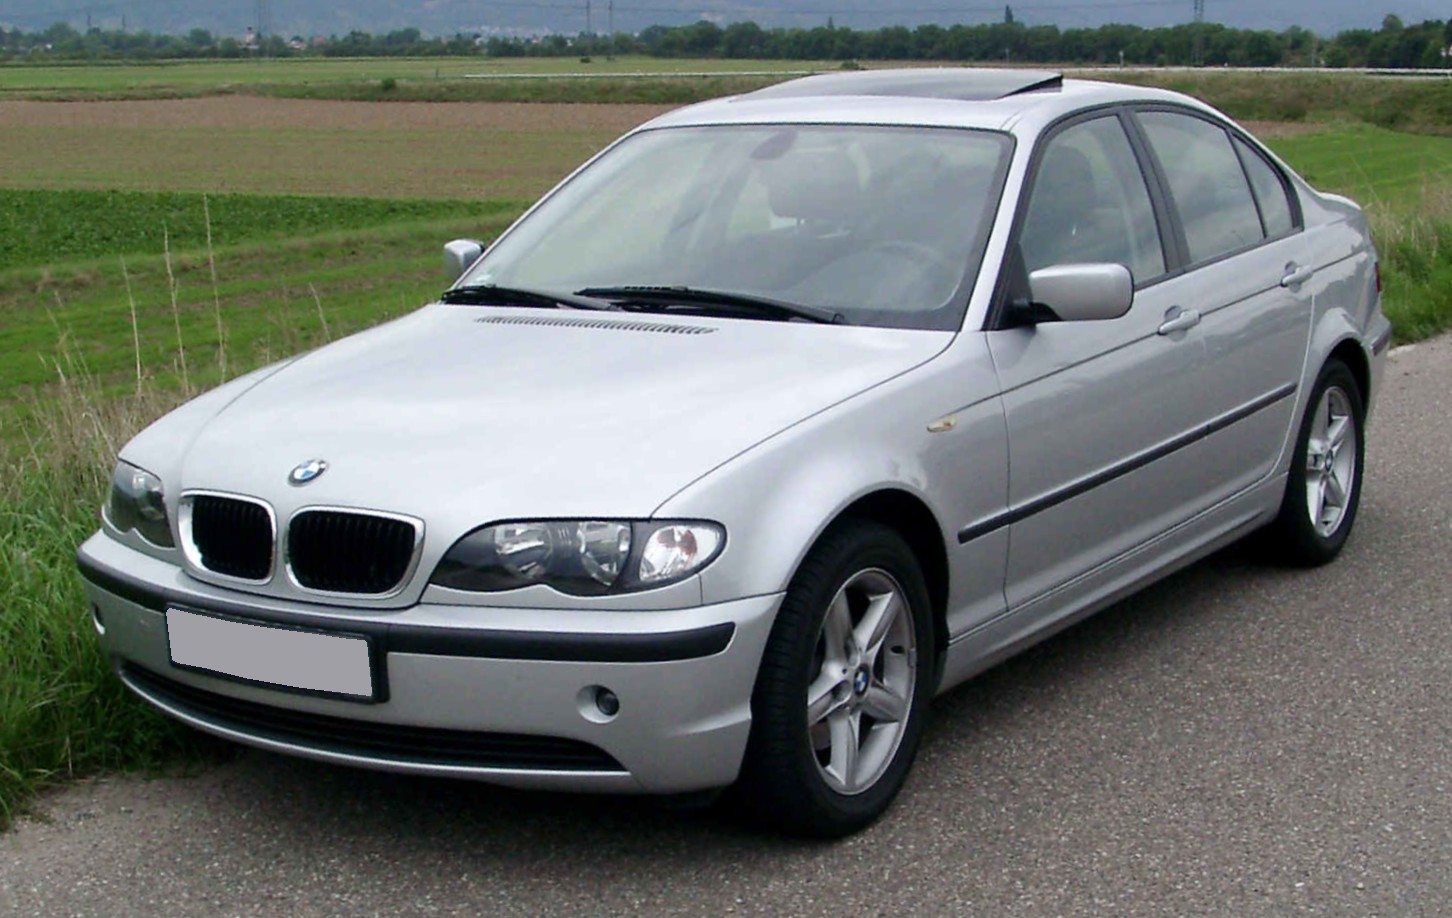 Bmw 325 2015 Review Amazing Pictures And Images Look